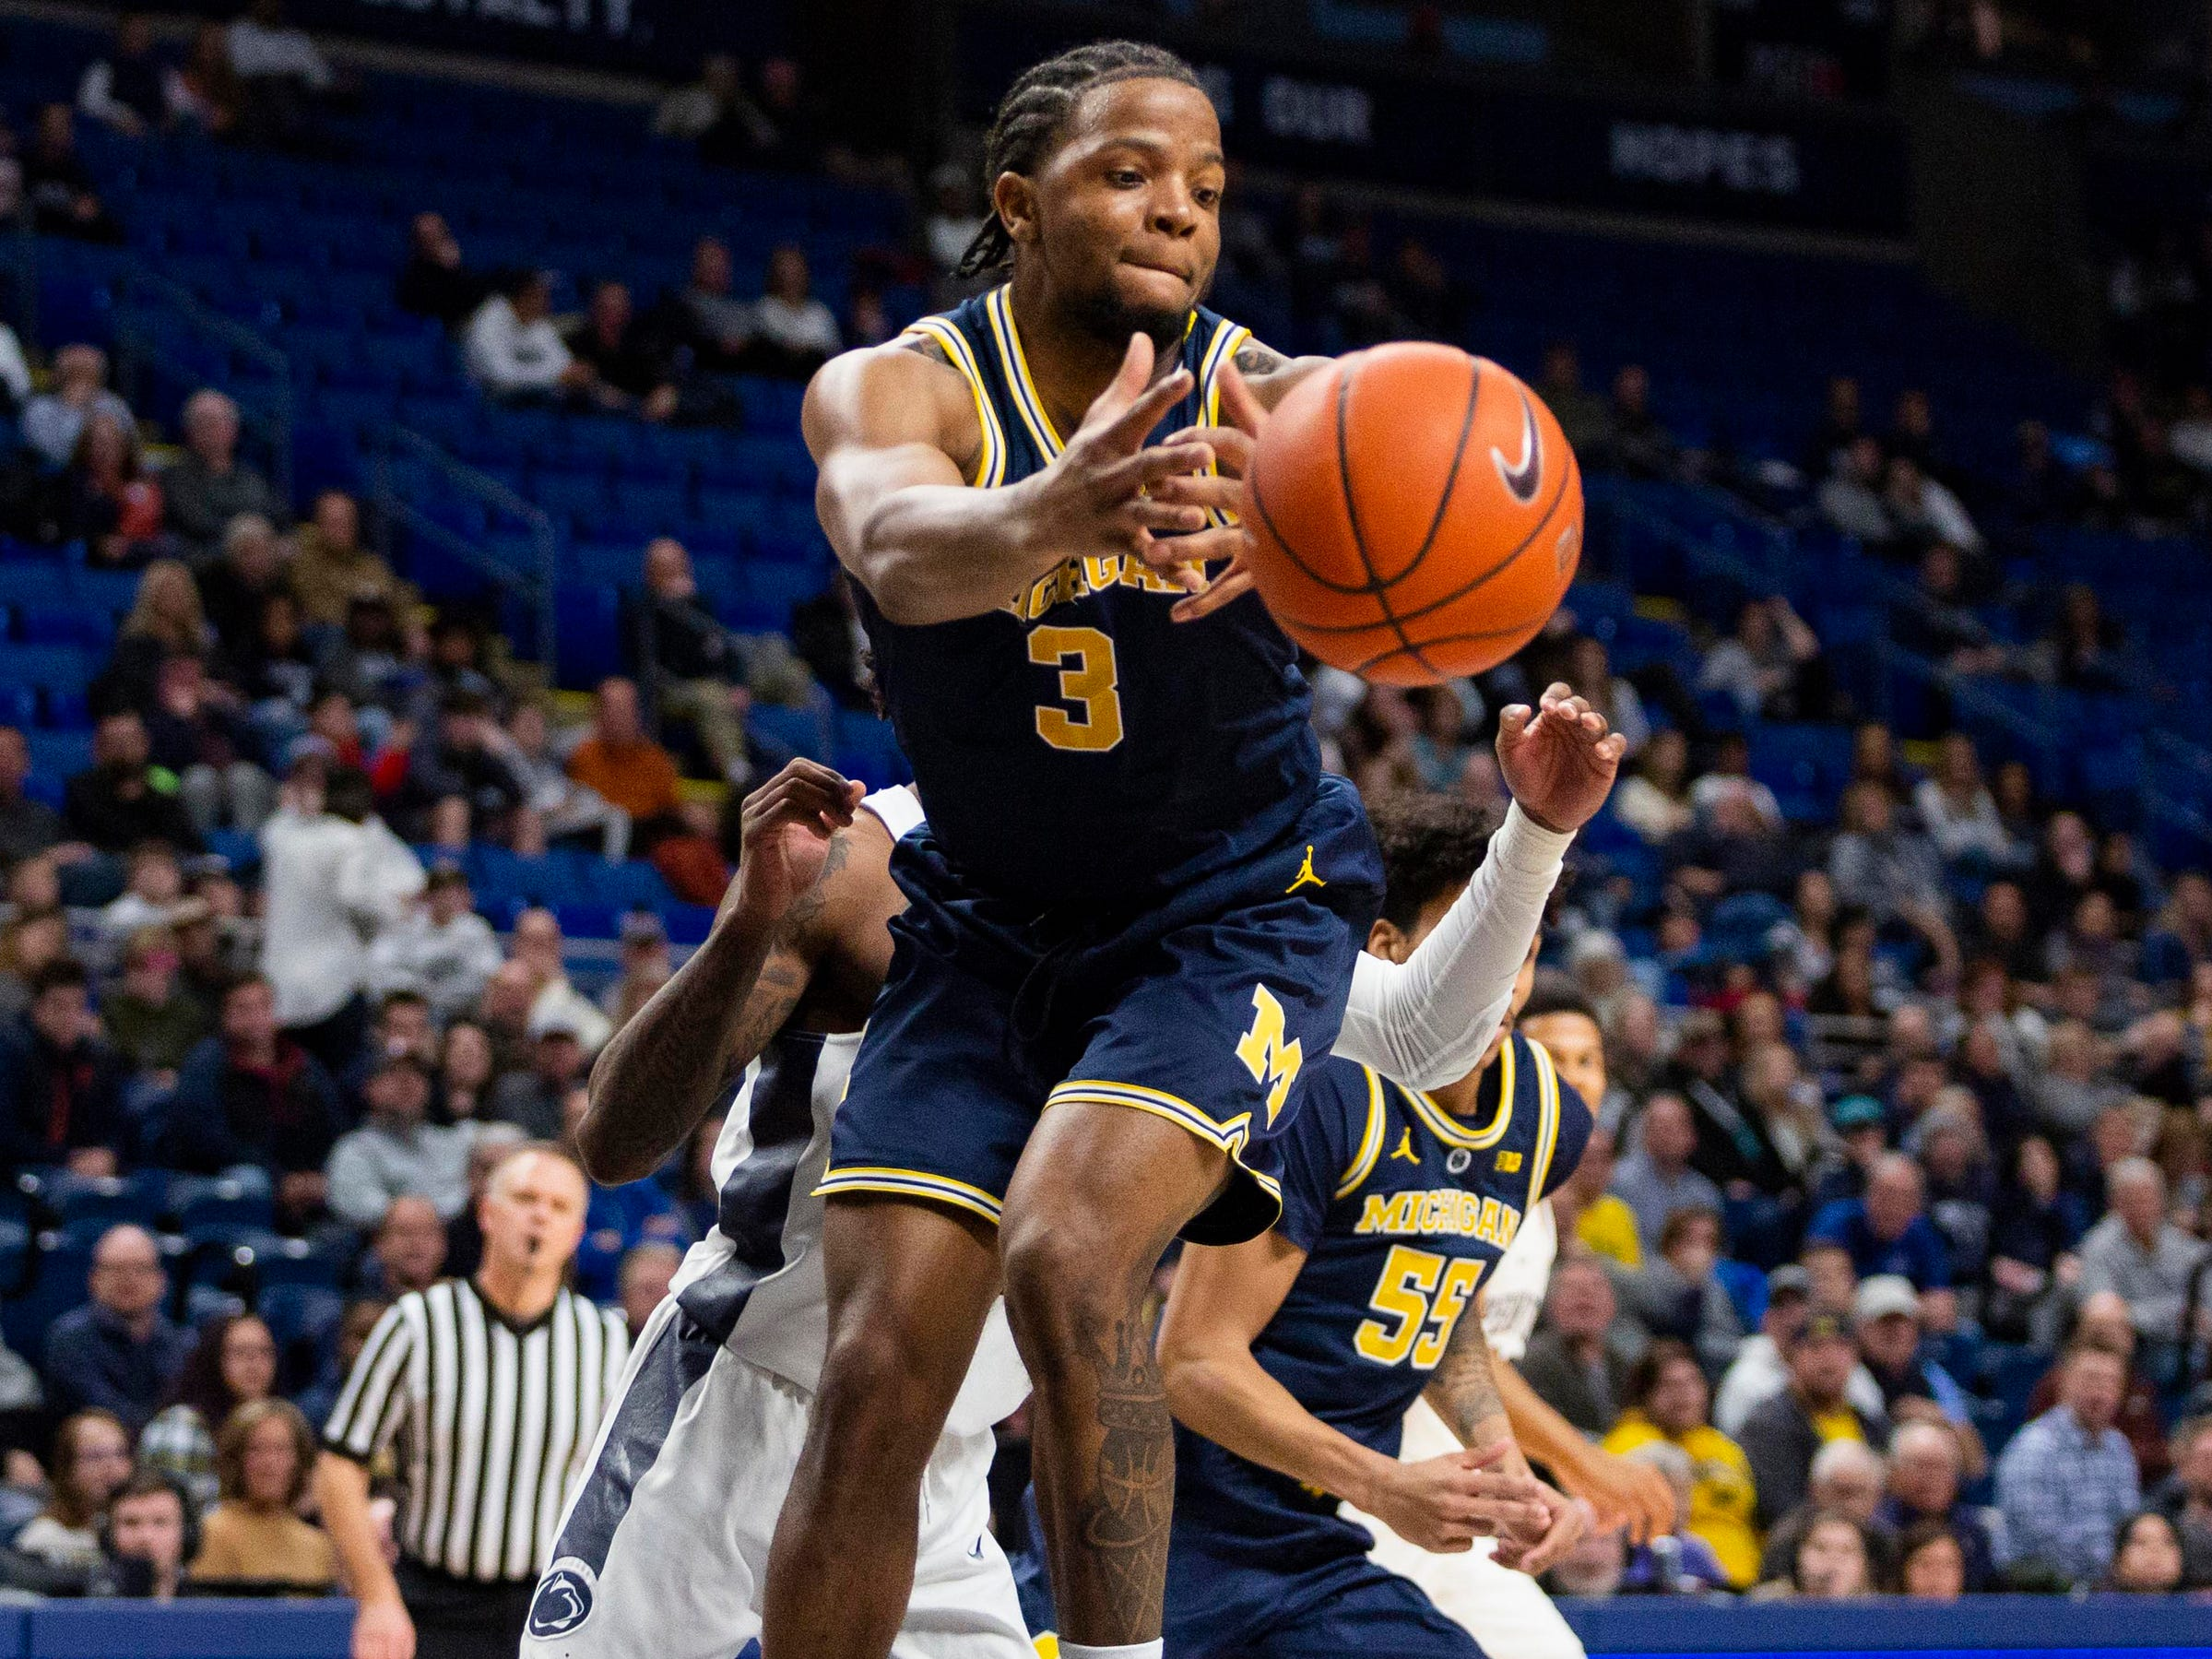 Michigan guard Zavier Simpson attempts to grab a rebound during the first half against Penn State, Tuesday, Feb. 12, 2019, in State College, Pa.